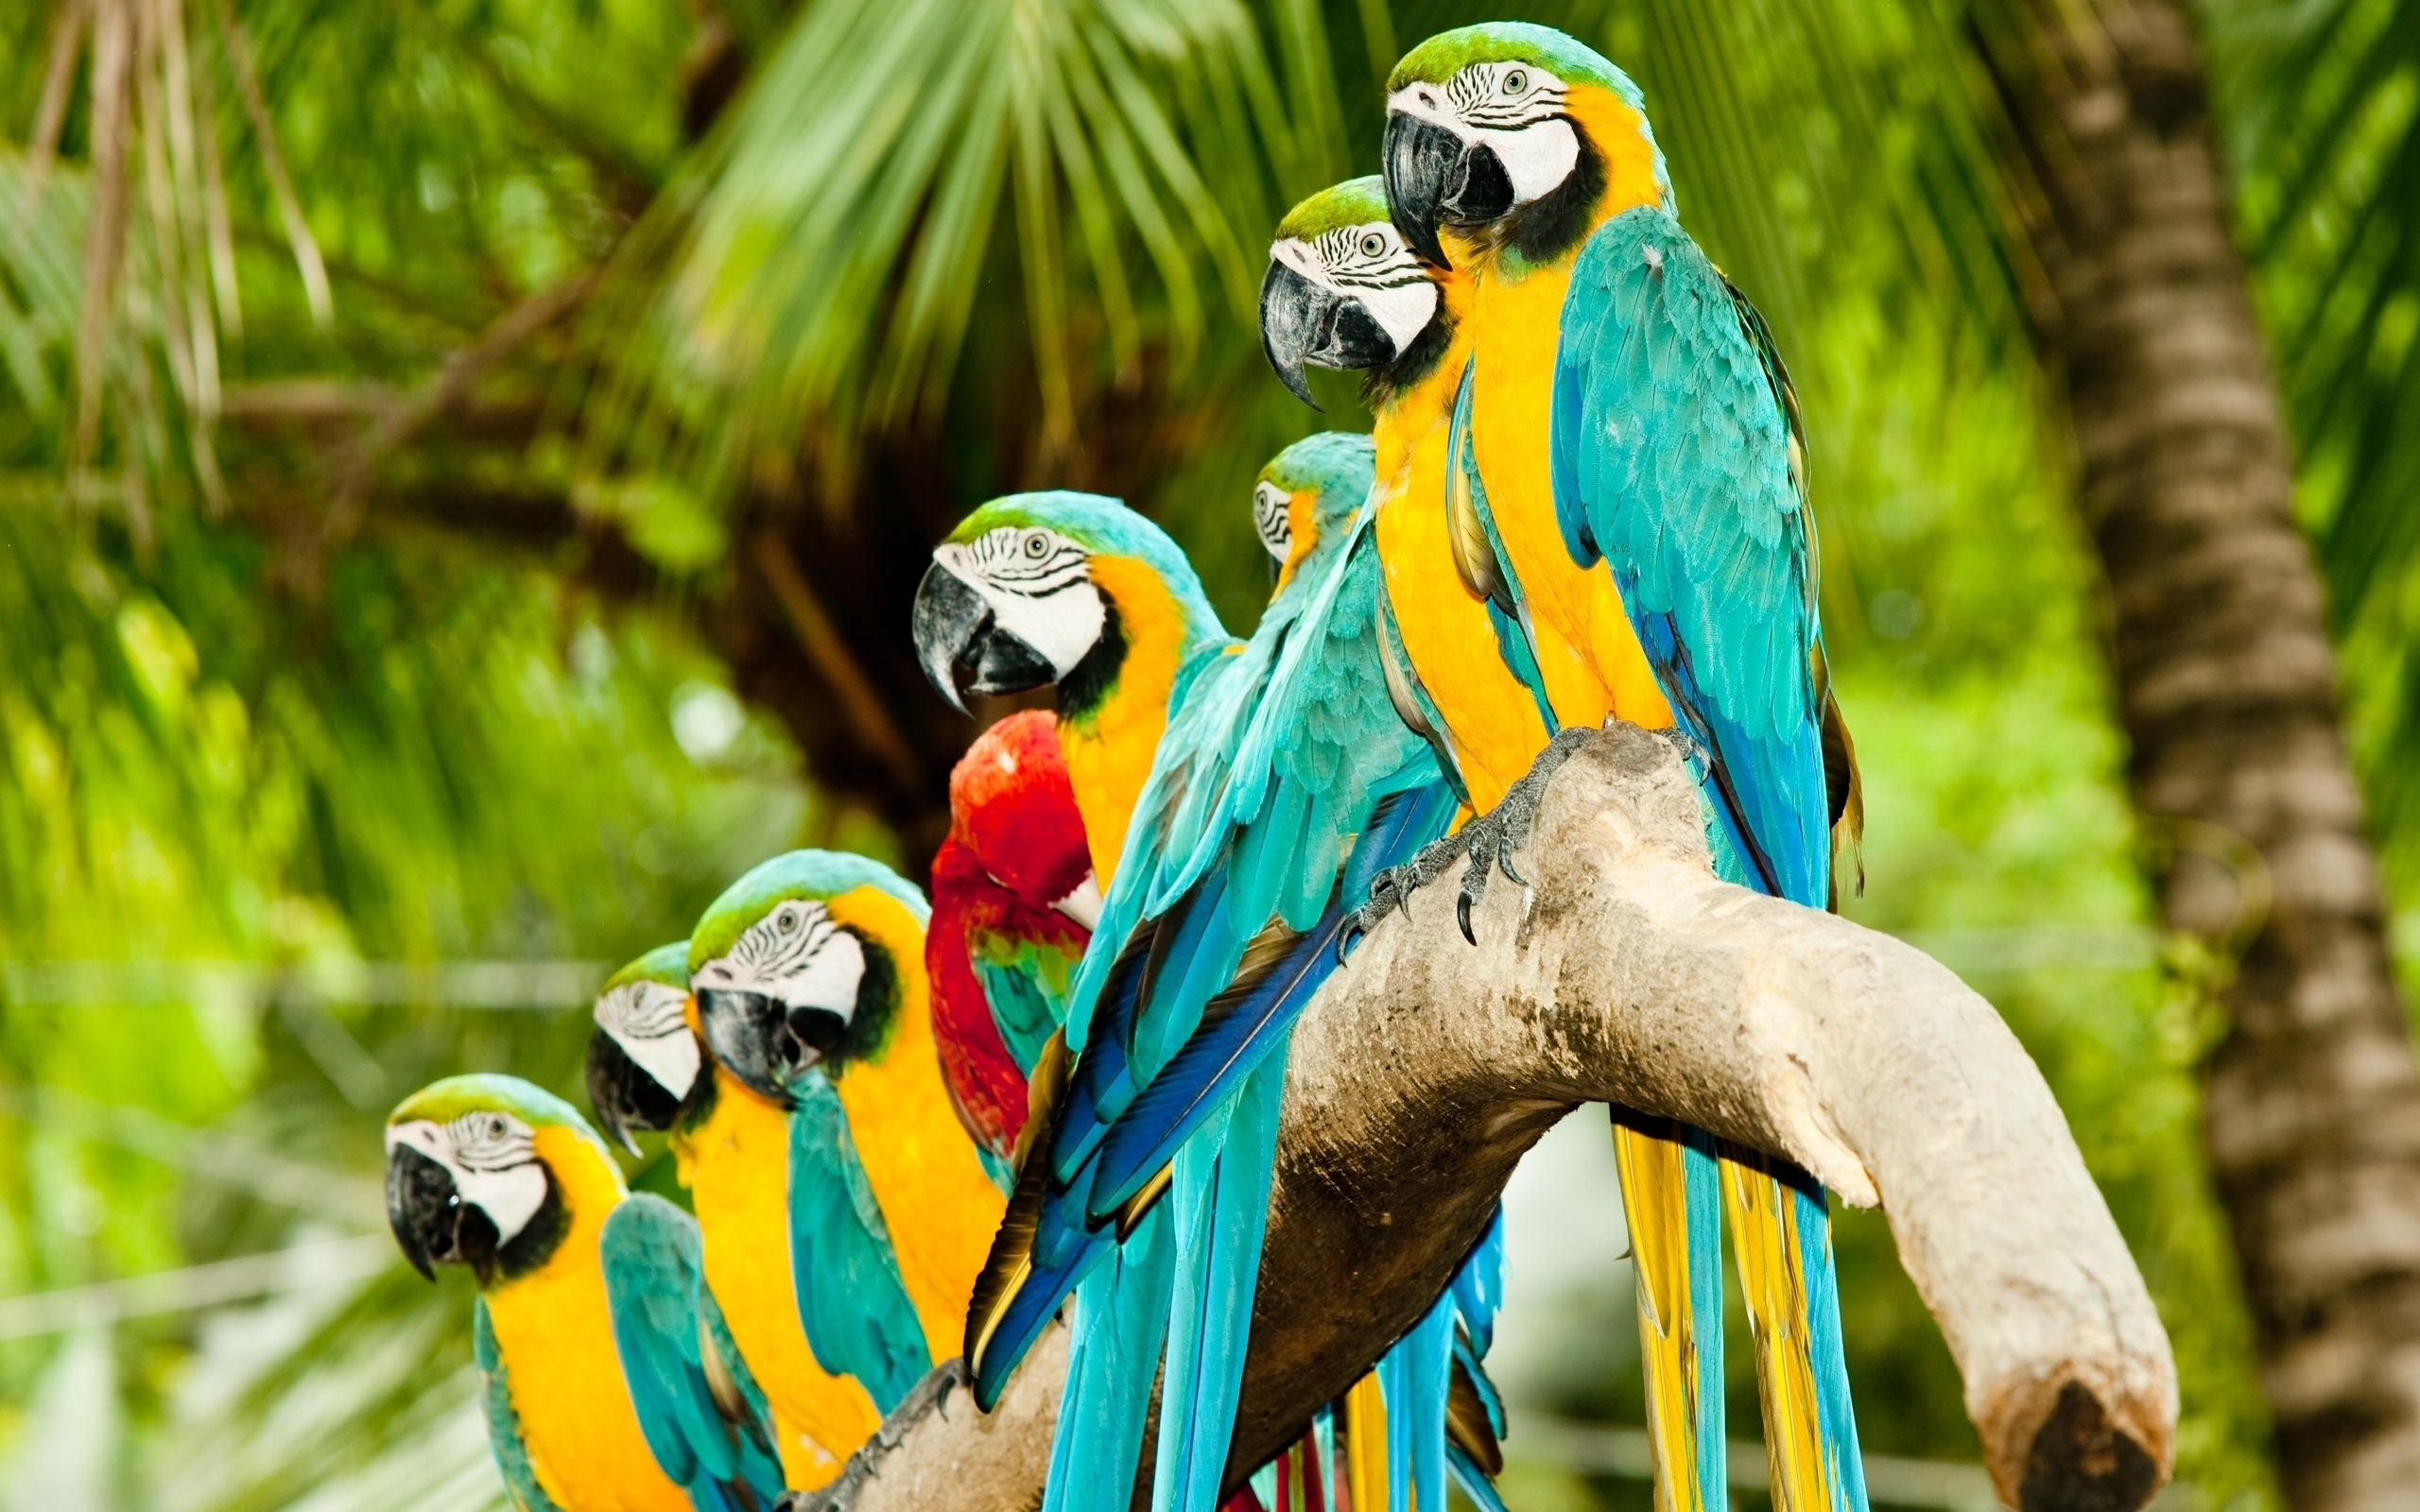 Image detail for  Colourful Parrots HD Wallpaper Birds HD 2560x1600